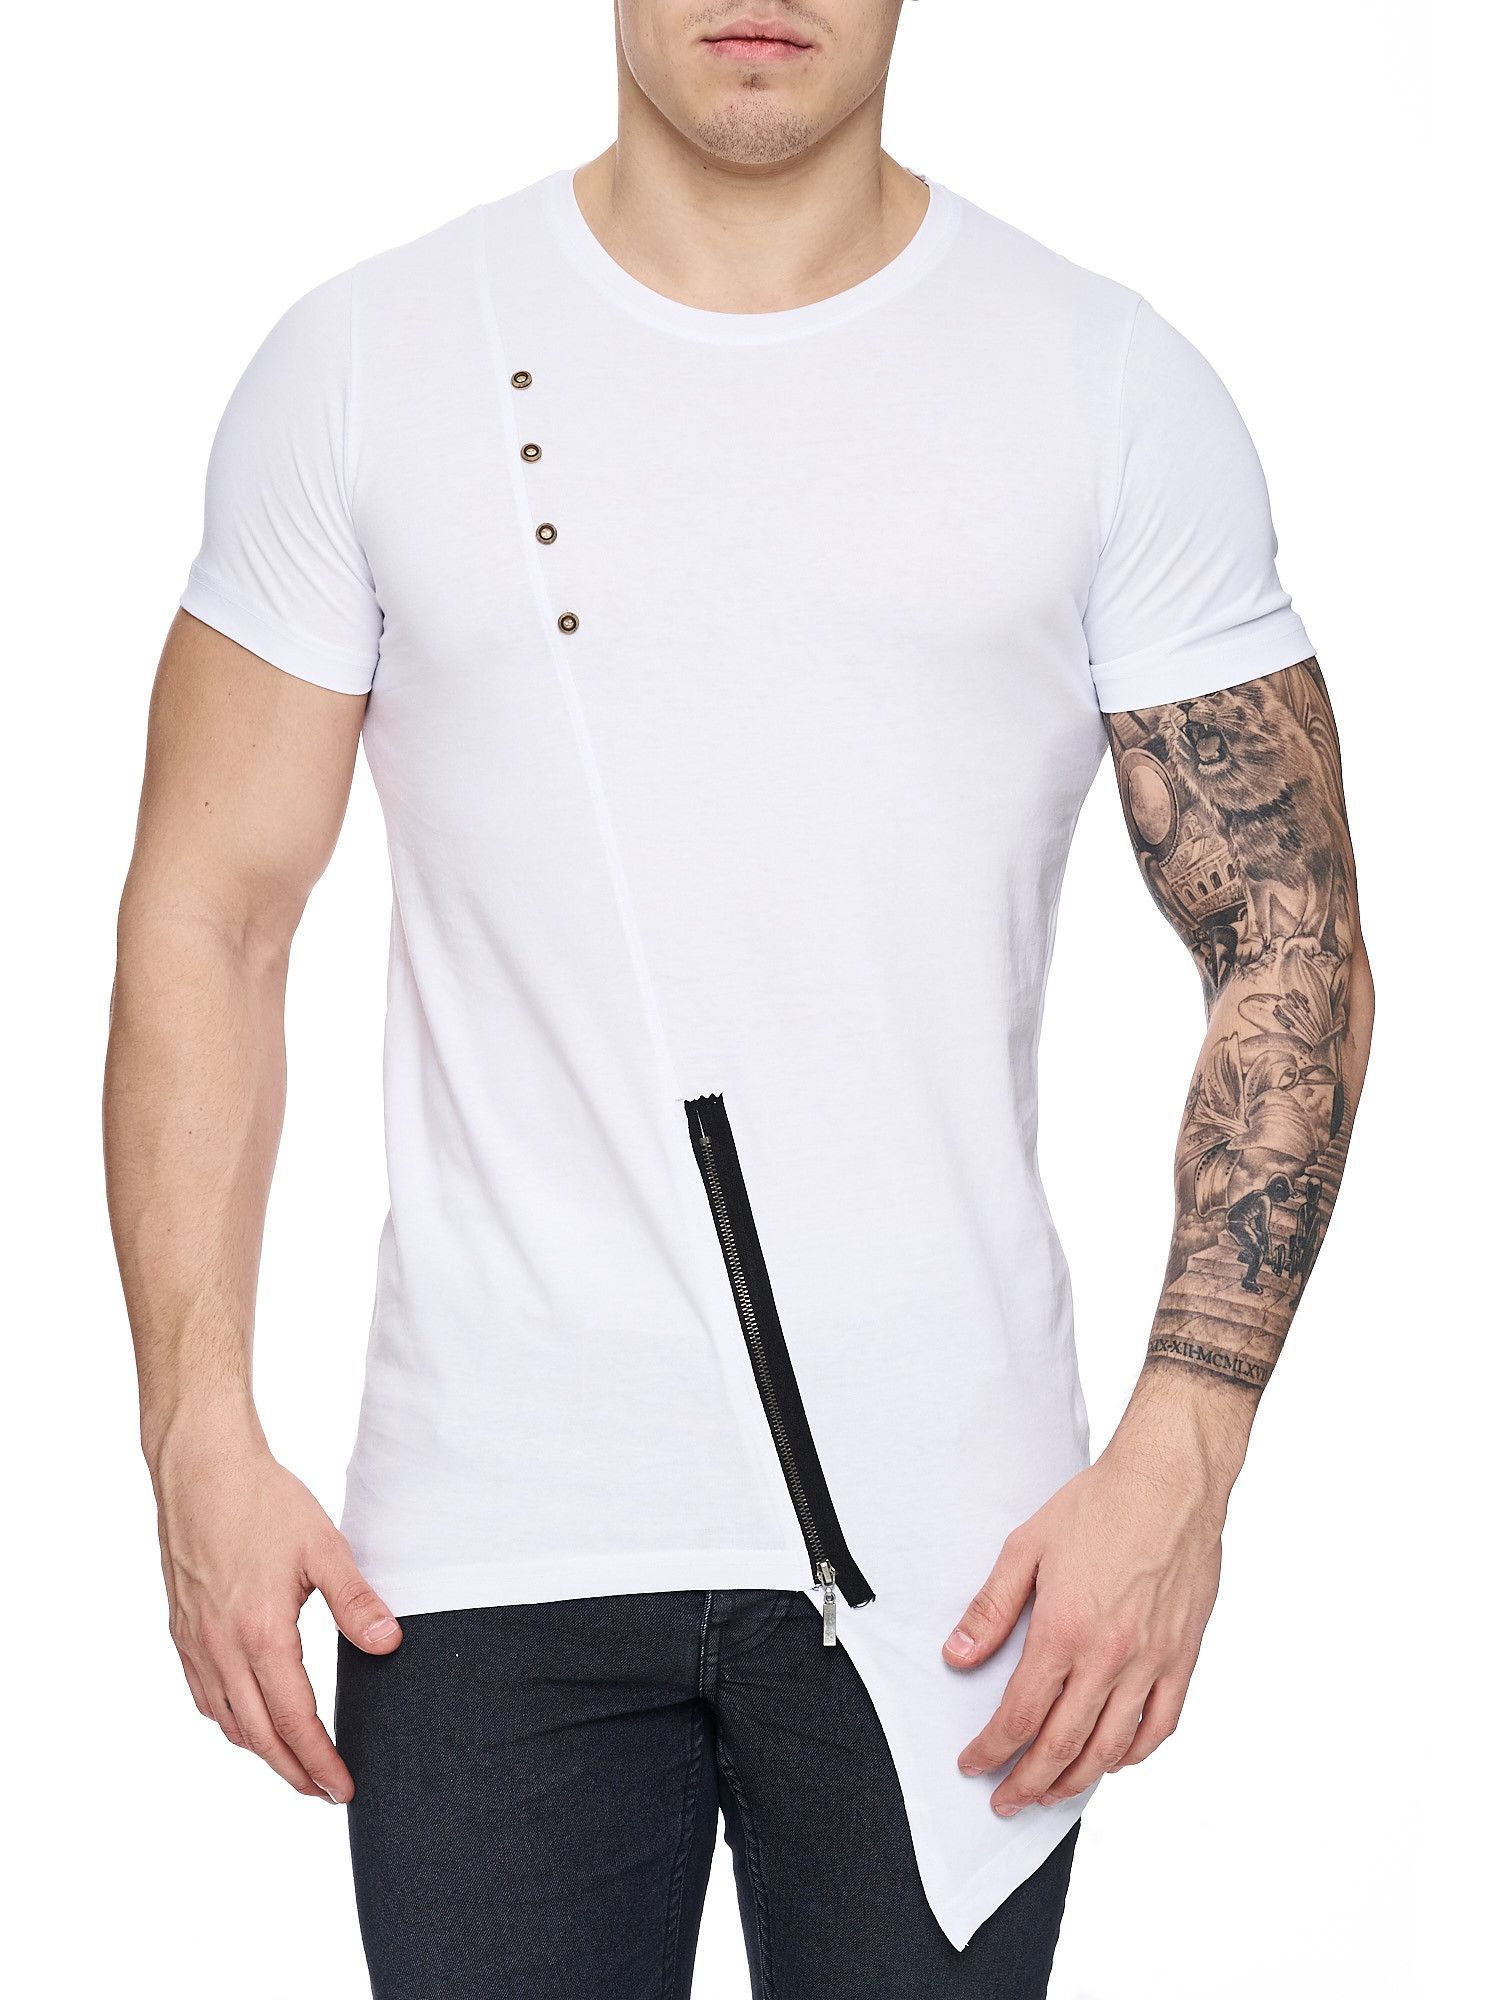 K&D Men Asymmetrical Zipper Long T-shirt - White | Tattoo, Men's ...